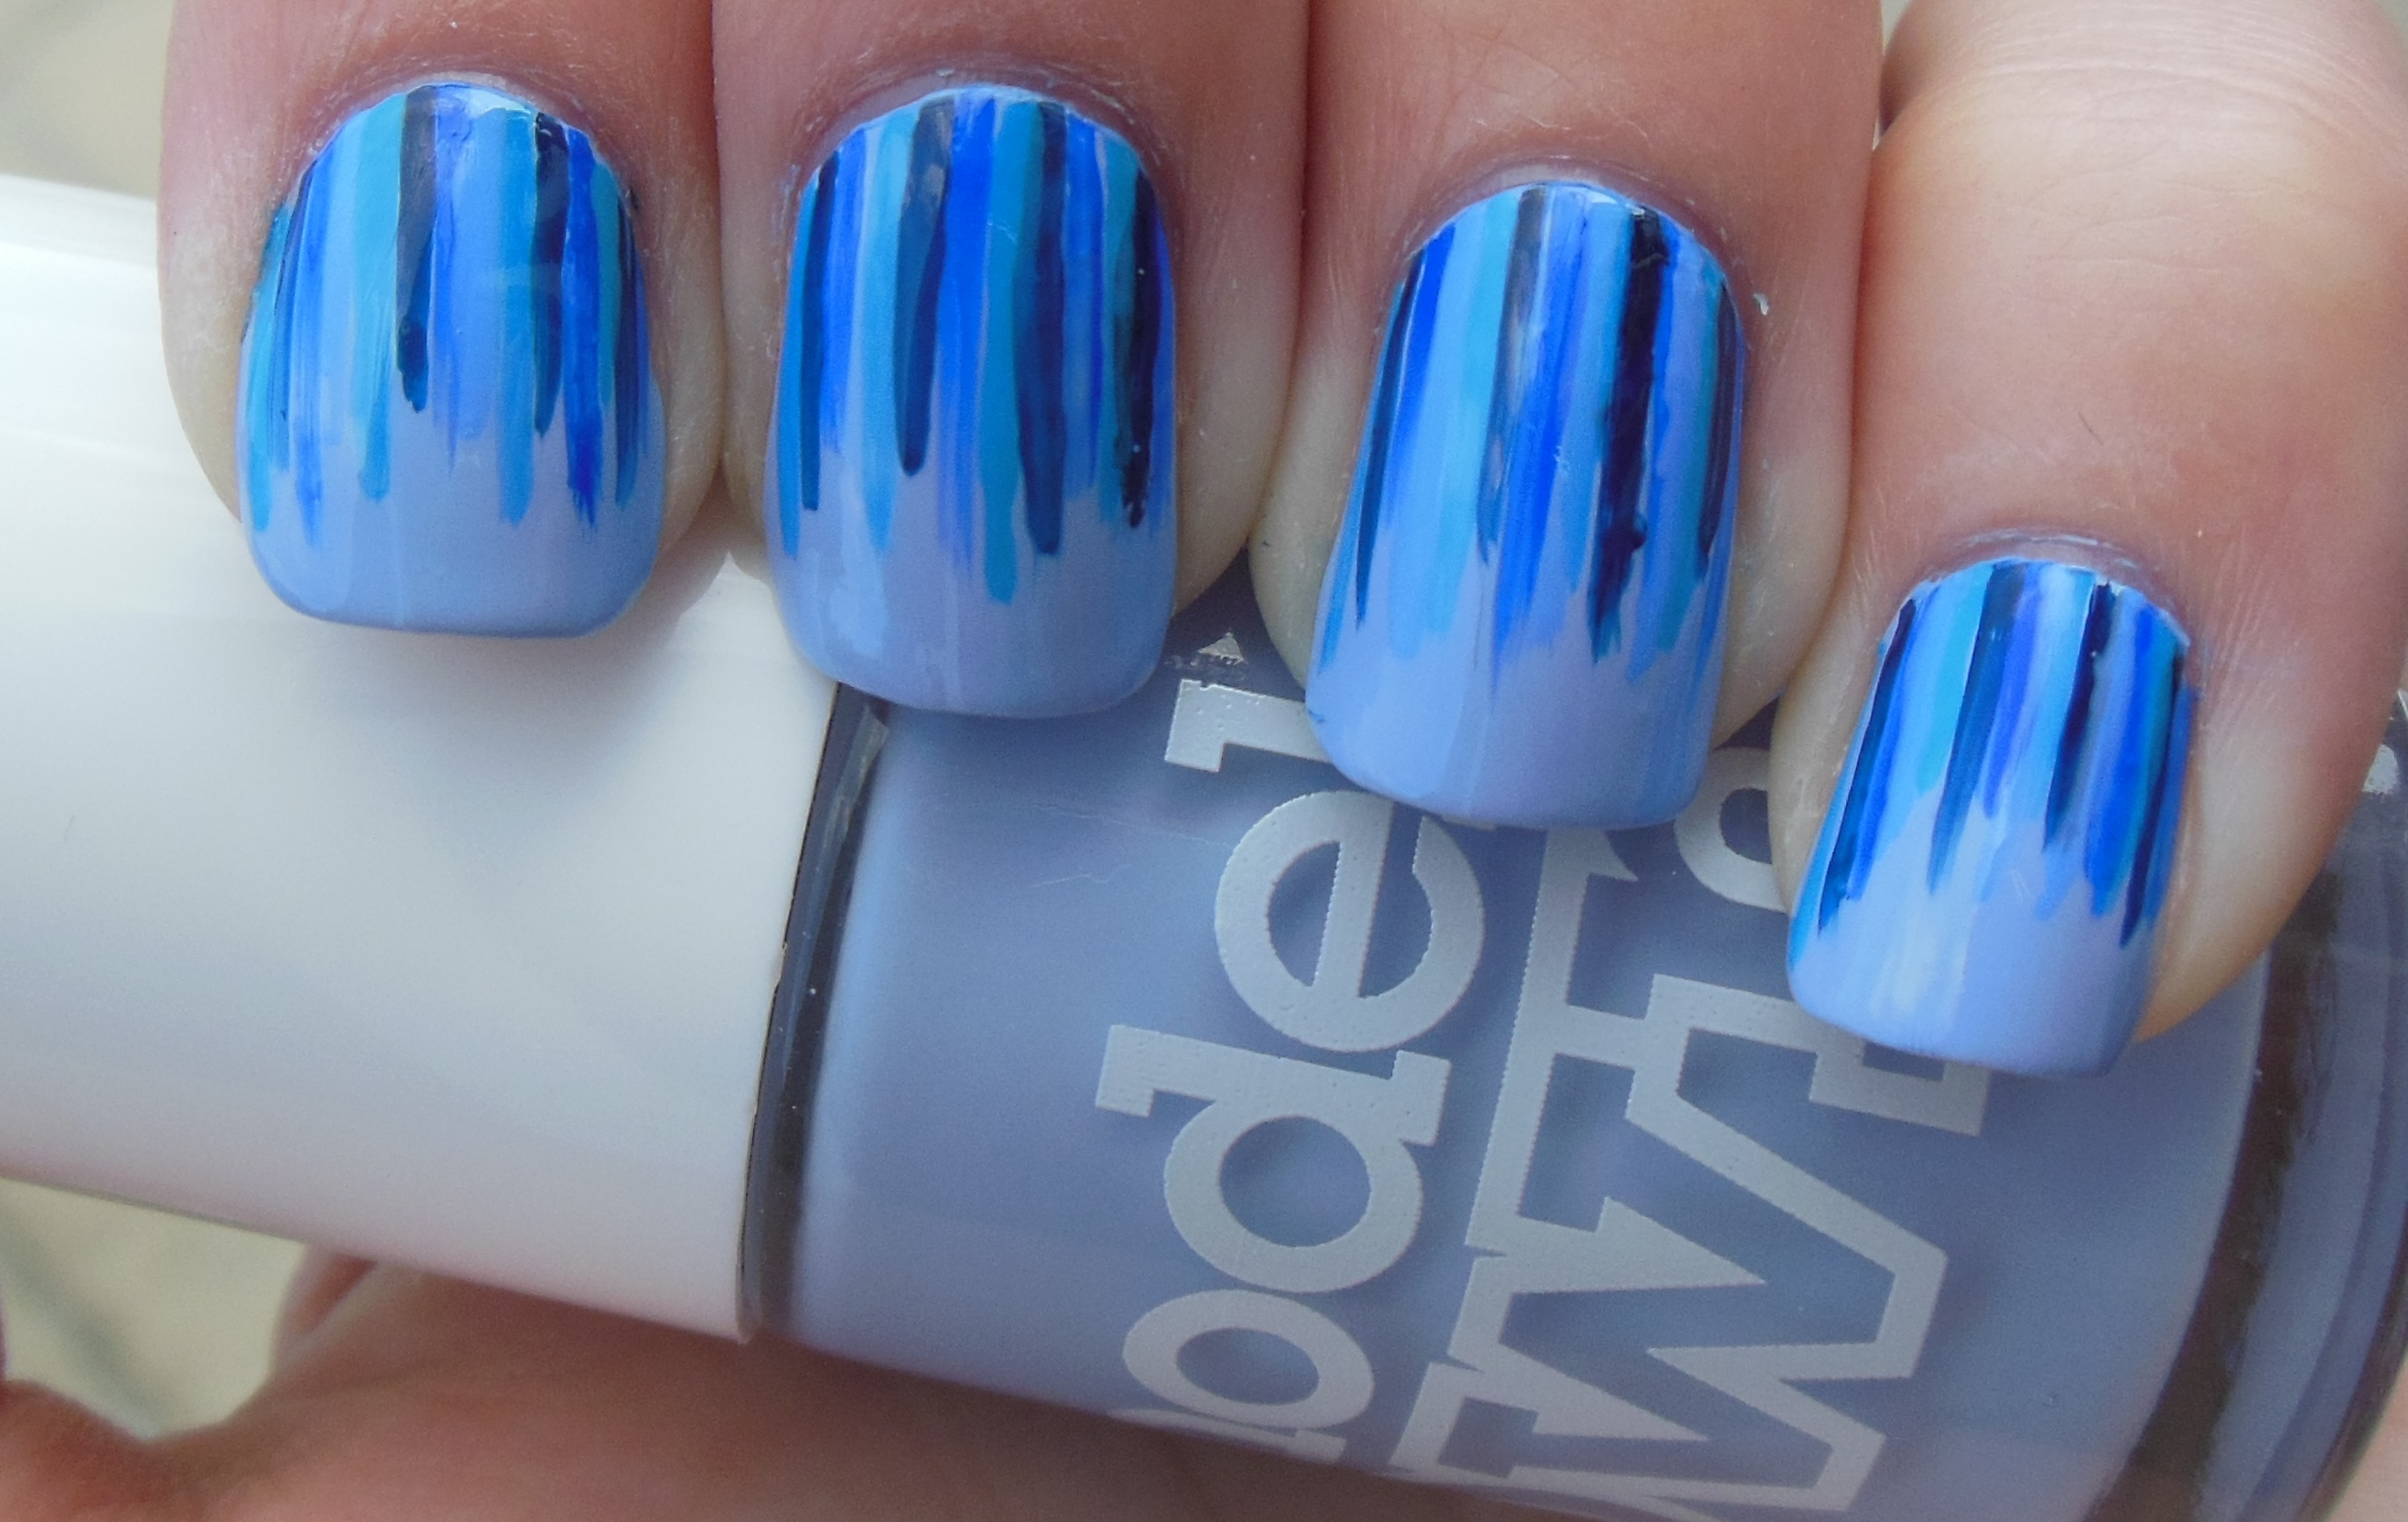 Simple Blue Design Ready in Five Minutes